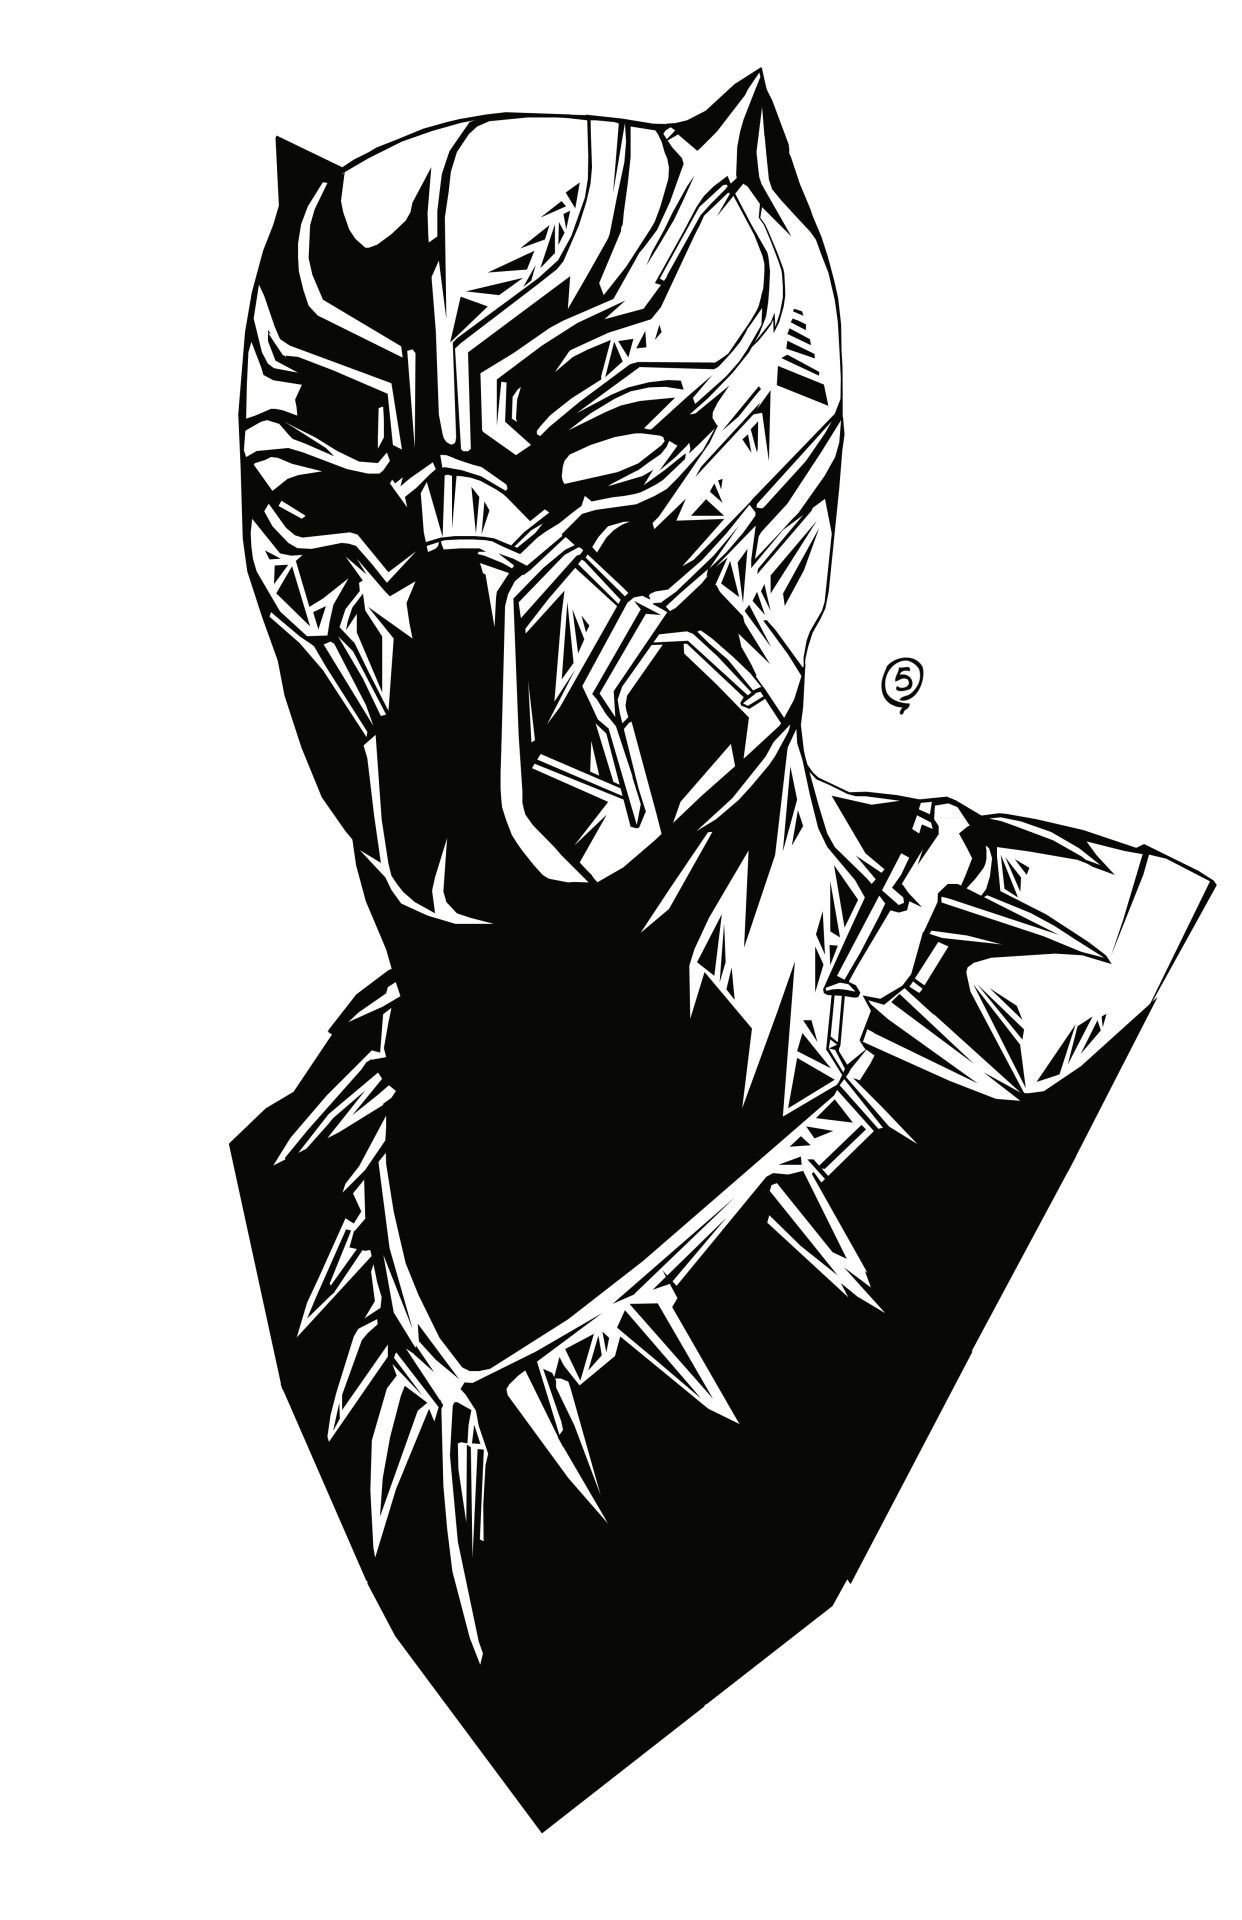 Black panther movie clipart 4 » Clipart Station.